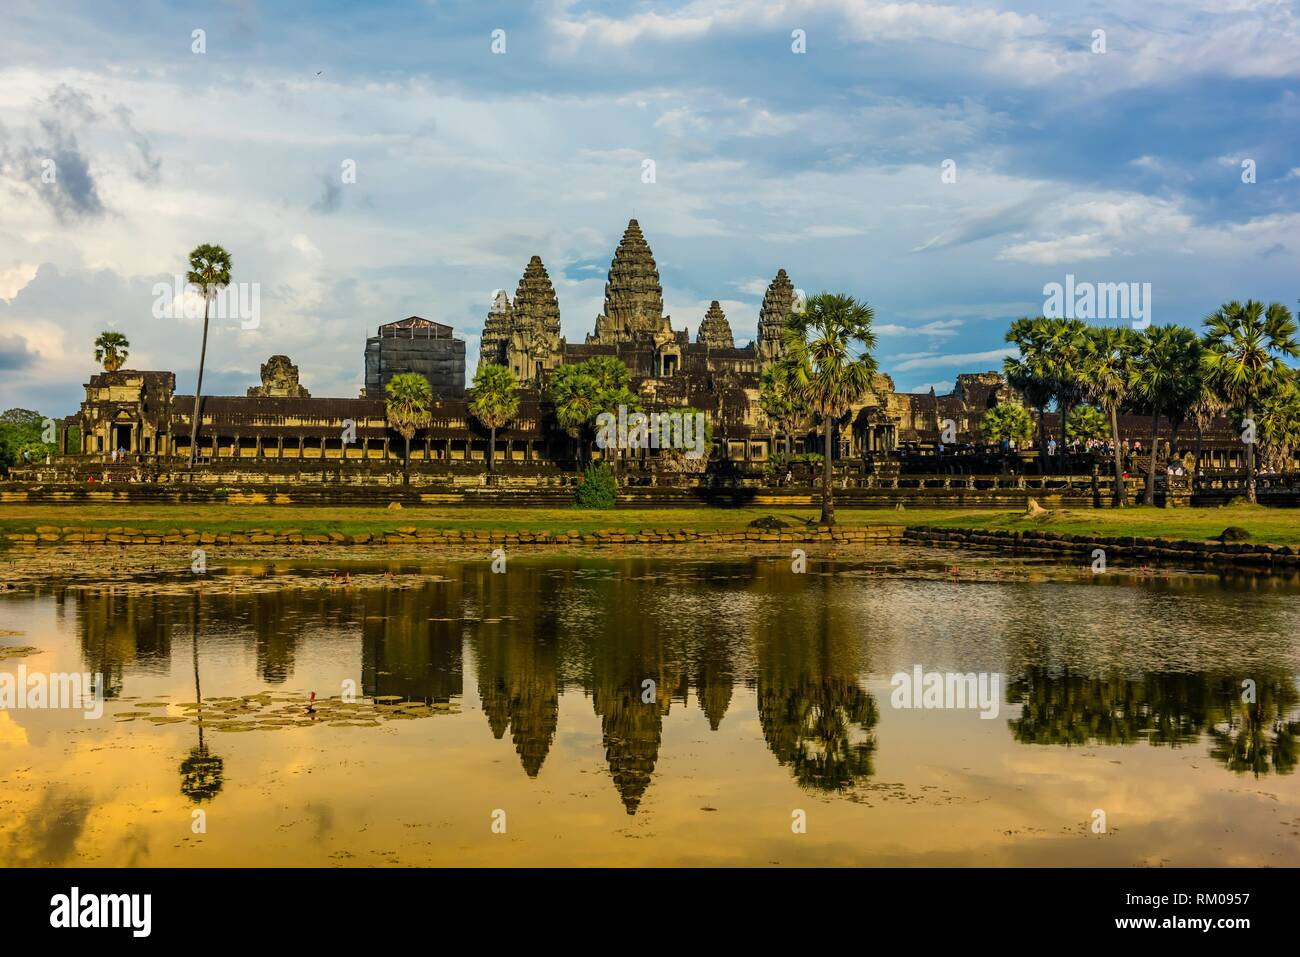 View of Angkor Wat with pond. It is the largest religious monument in the world. It's name means City which is a temple; Cambodia. Stock Photo